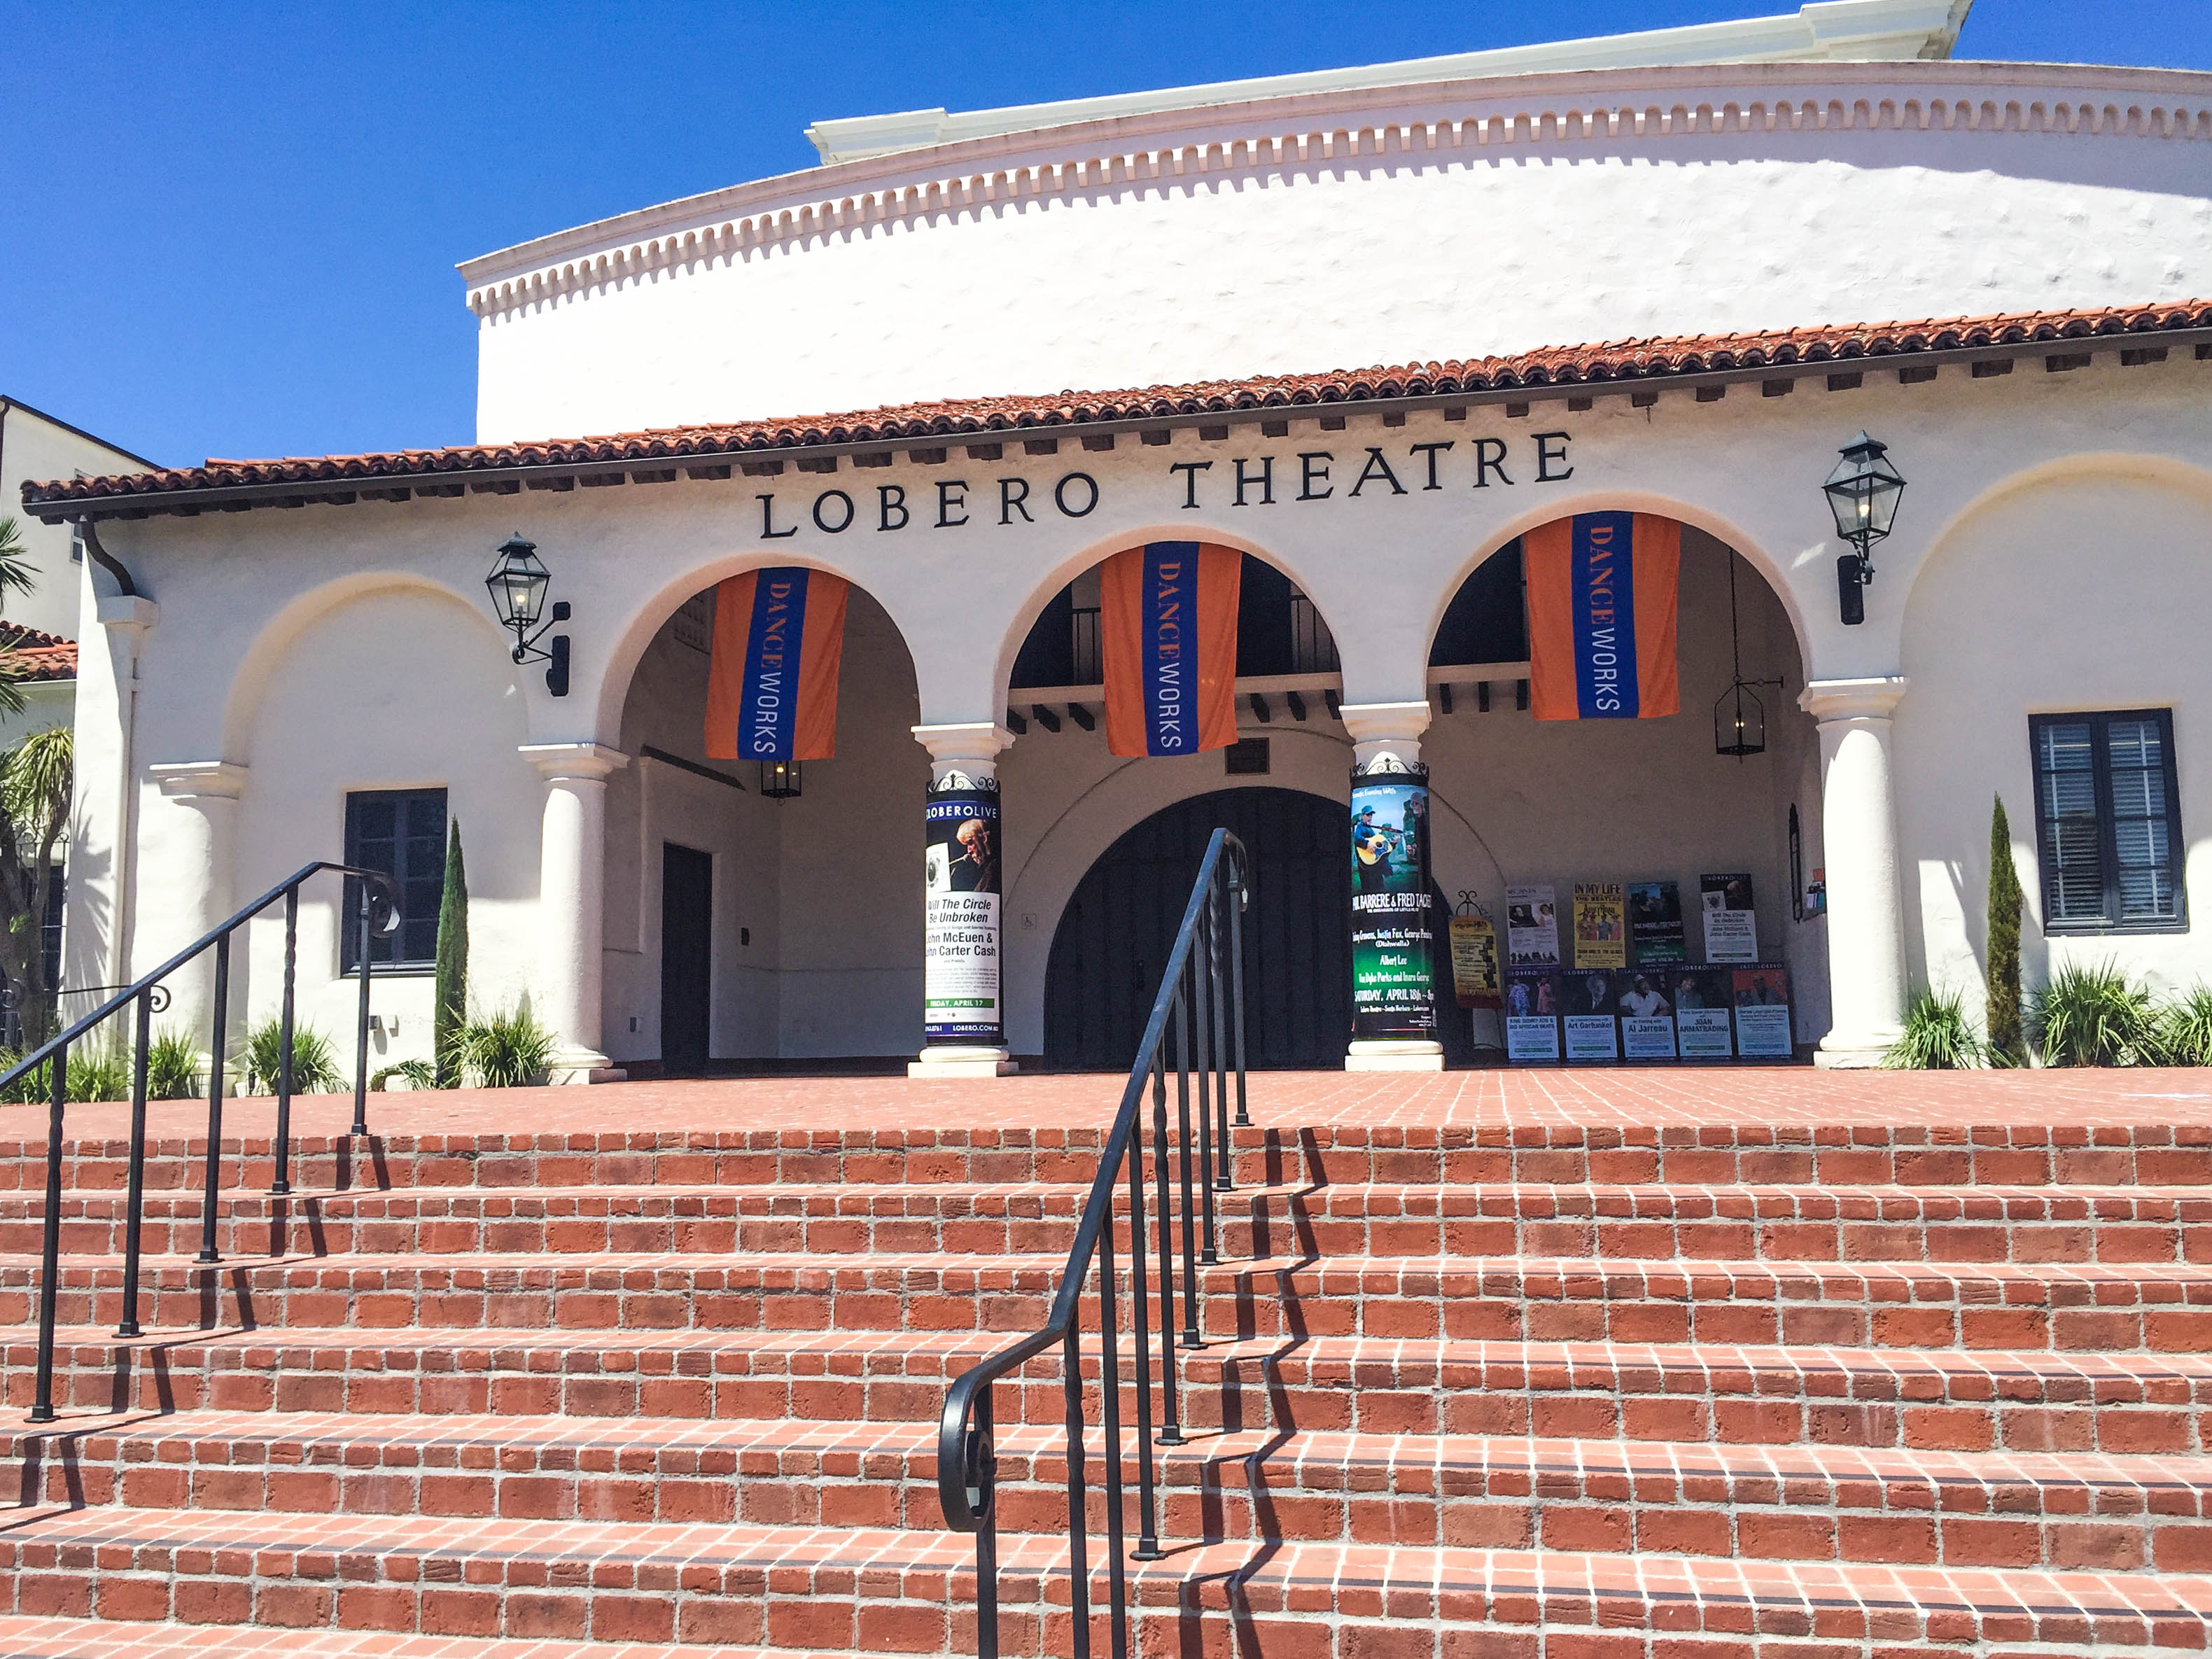 The Lobero Theatre, Santa Barbara